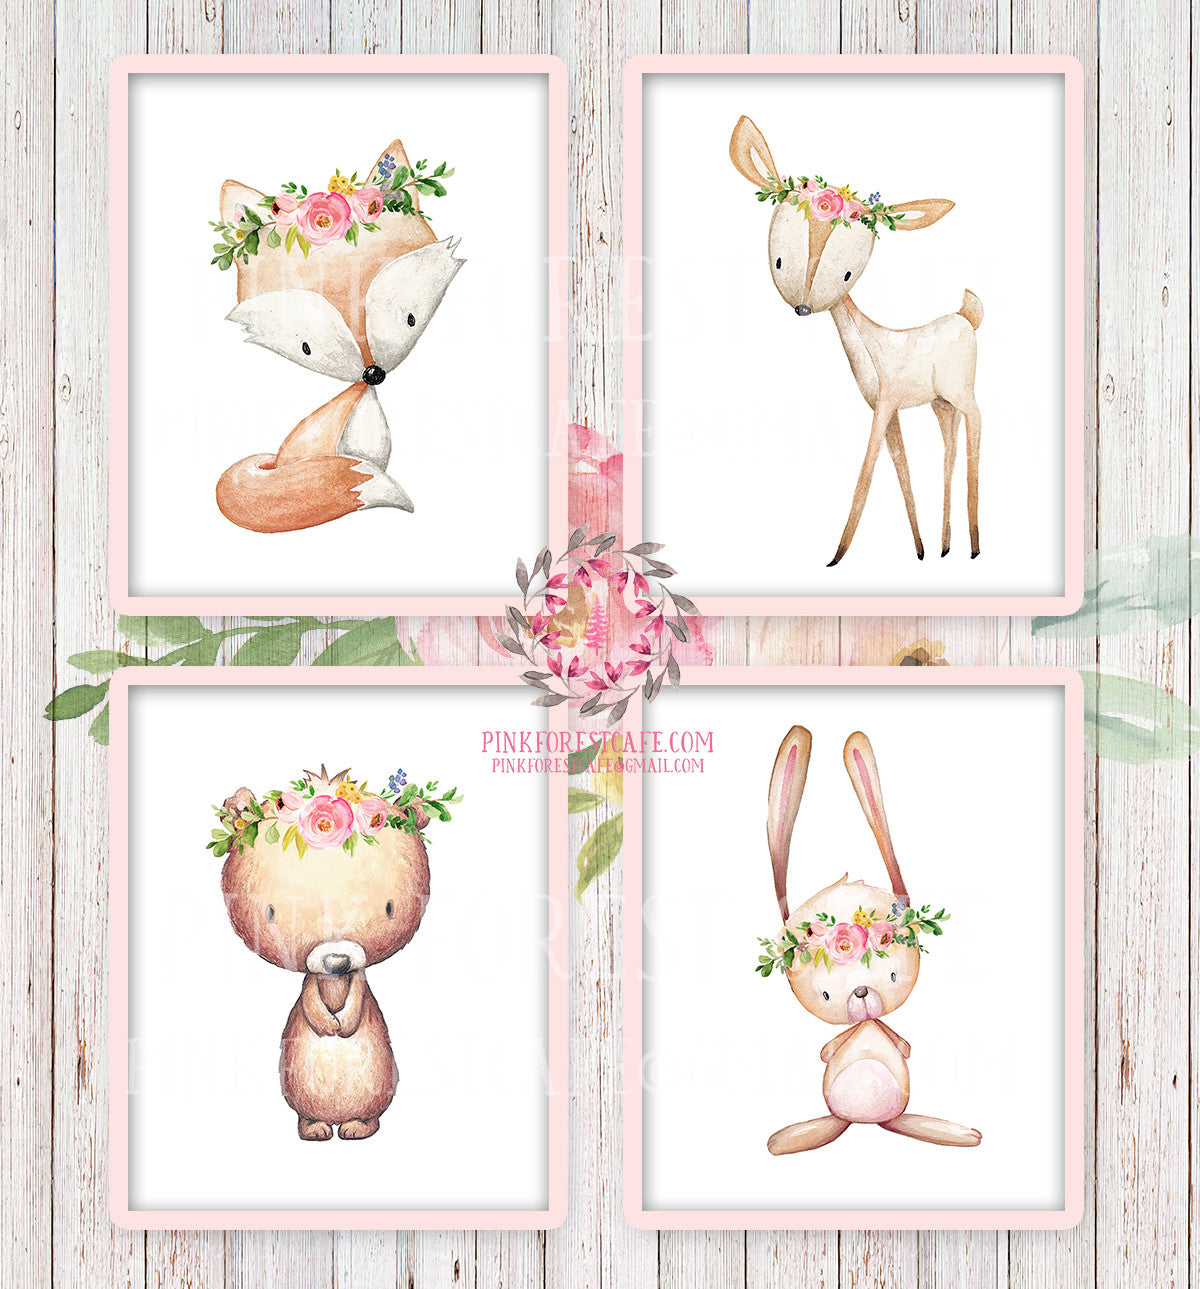 4 Deer Fox Bunny Rabbit Bear Woodland Boho Bohemian Floral Nursery Baby Girl Room Set Lot Prints Printable Print Wall Art Home Decor